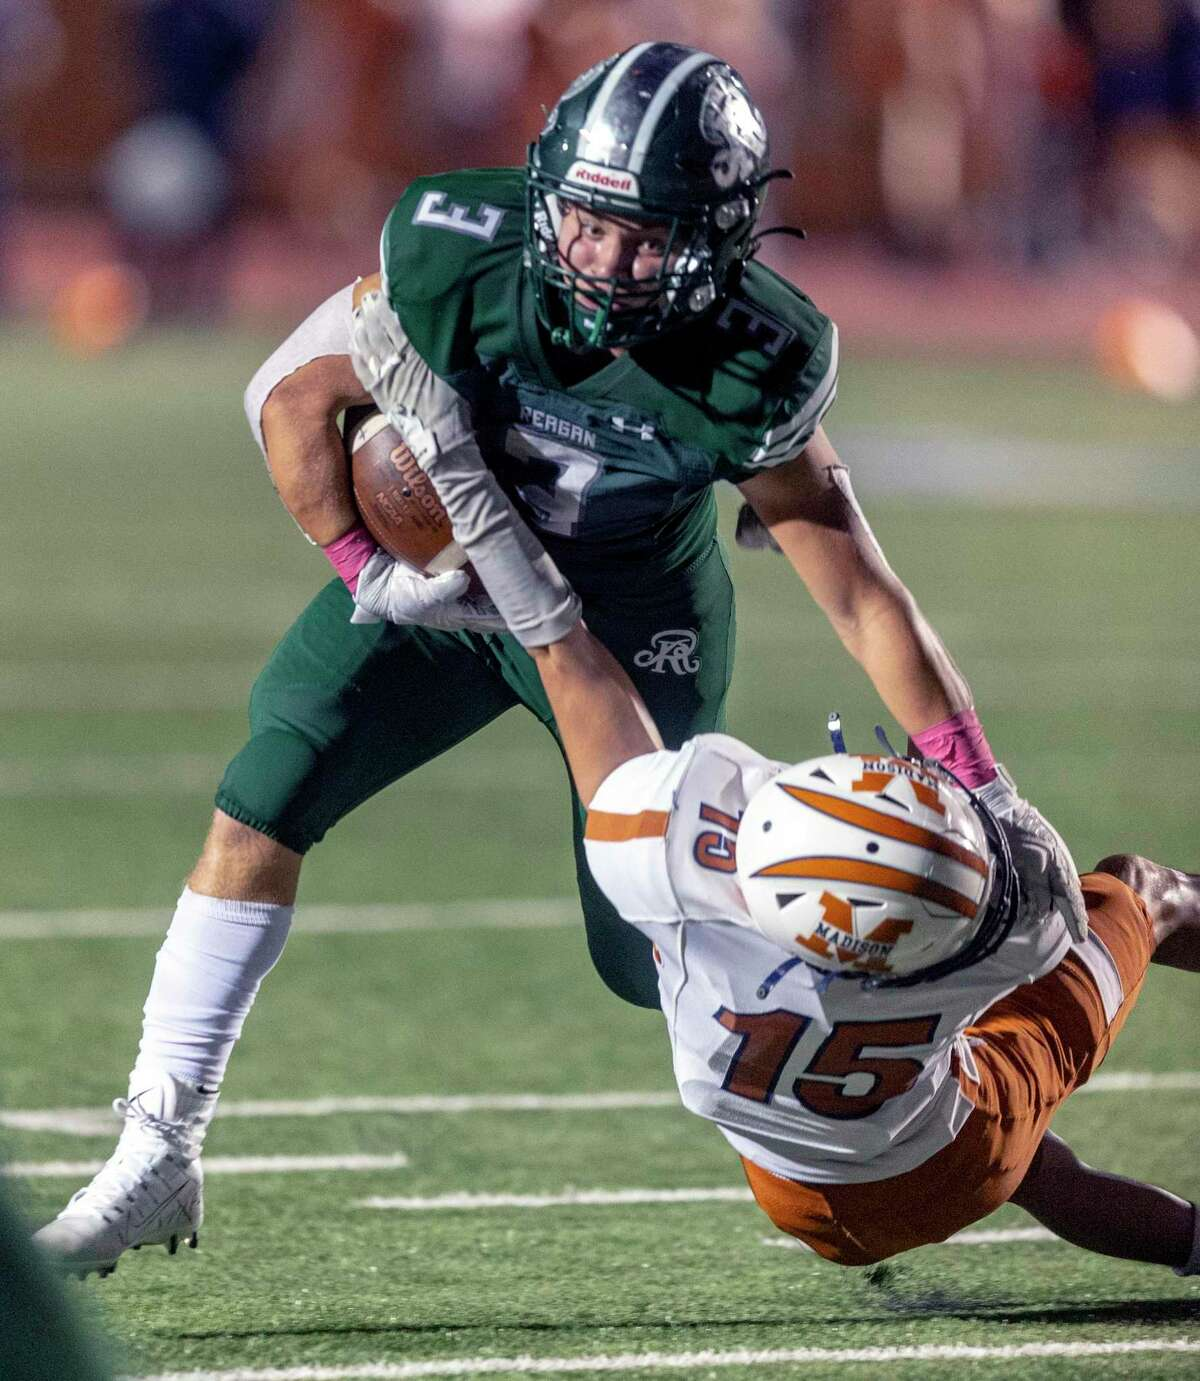 Reagan's Javier Colsa tries Friday, Oct. 1, 2021 to break away from Madison's Damian Mendoza during the first half of the Rattlers' game against the Mavericks.